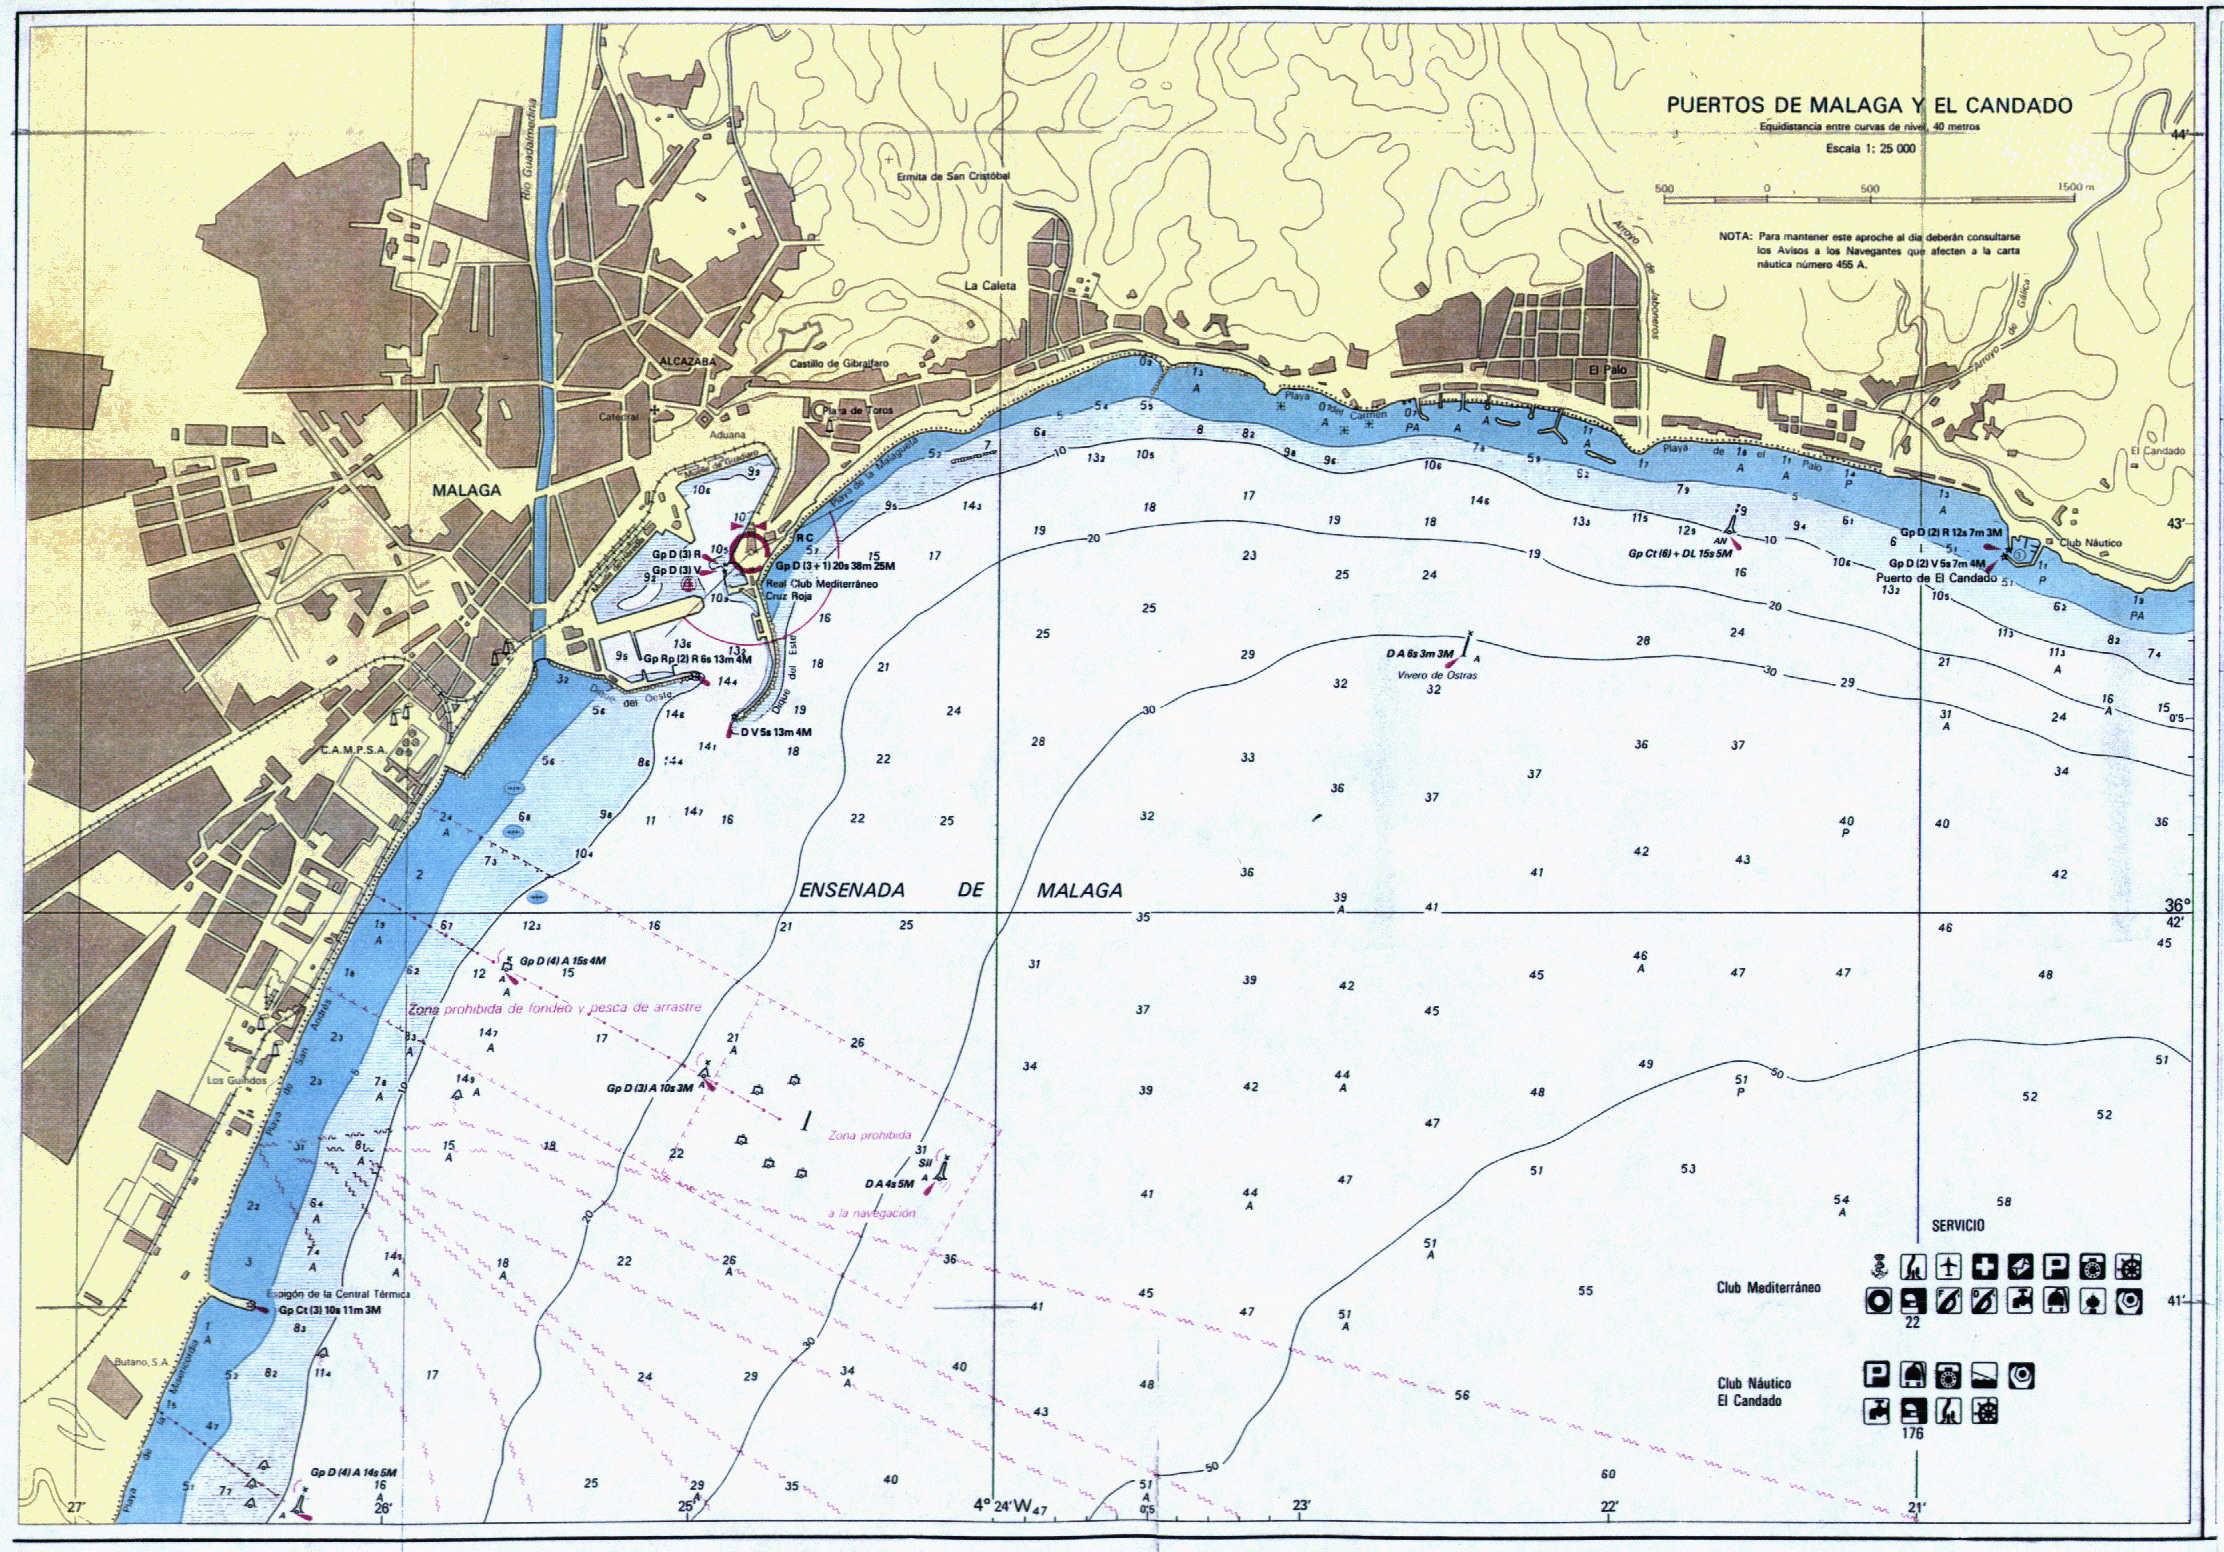 Nautical chart of the ports of Málaga and El Candado